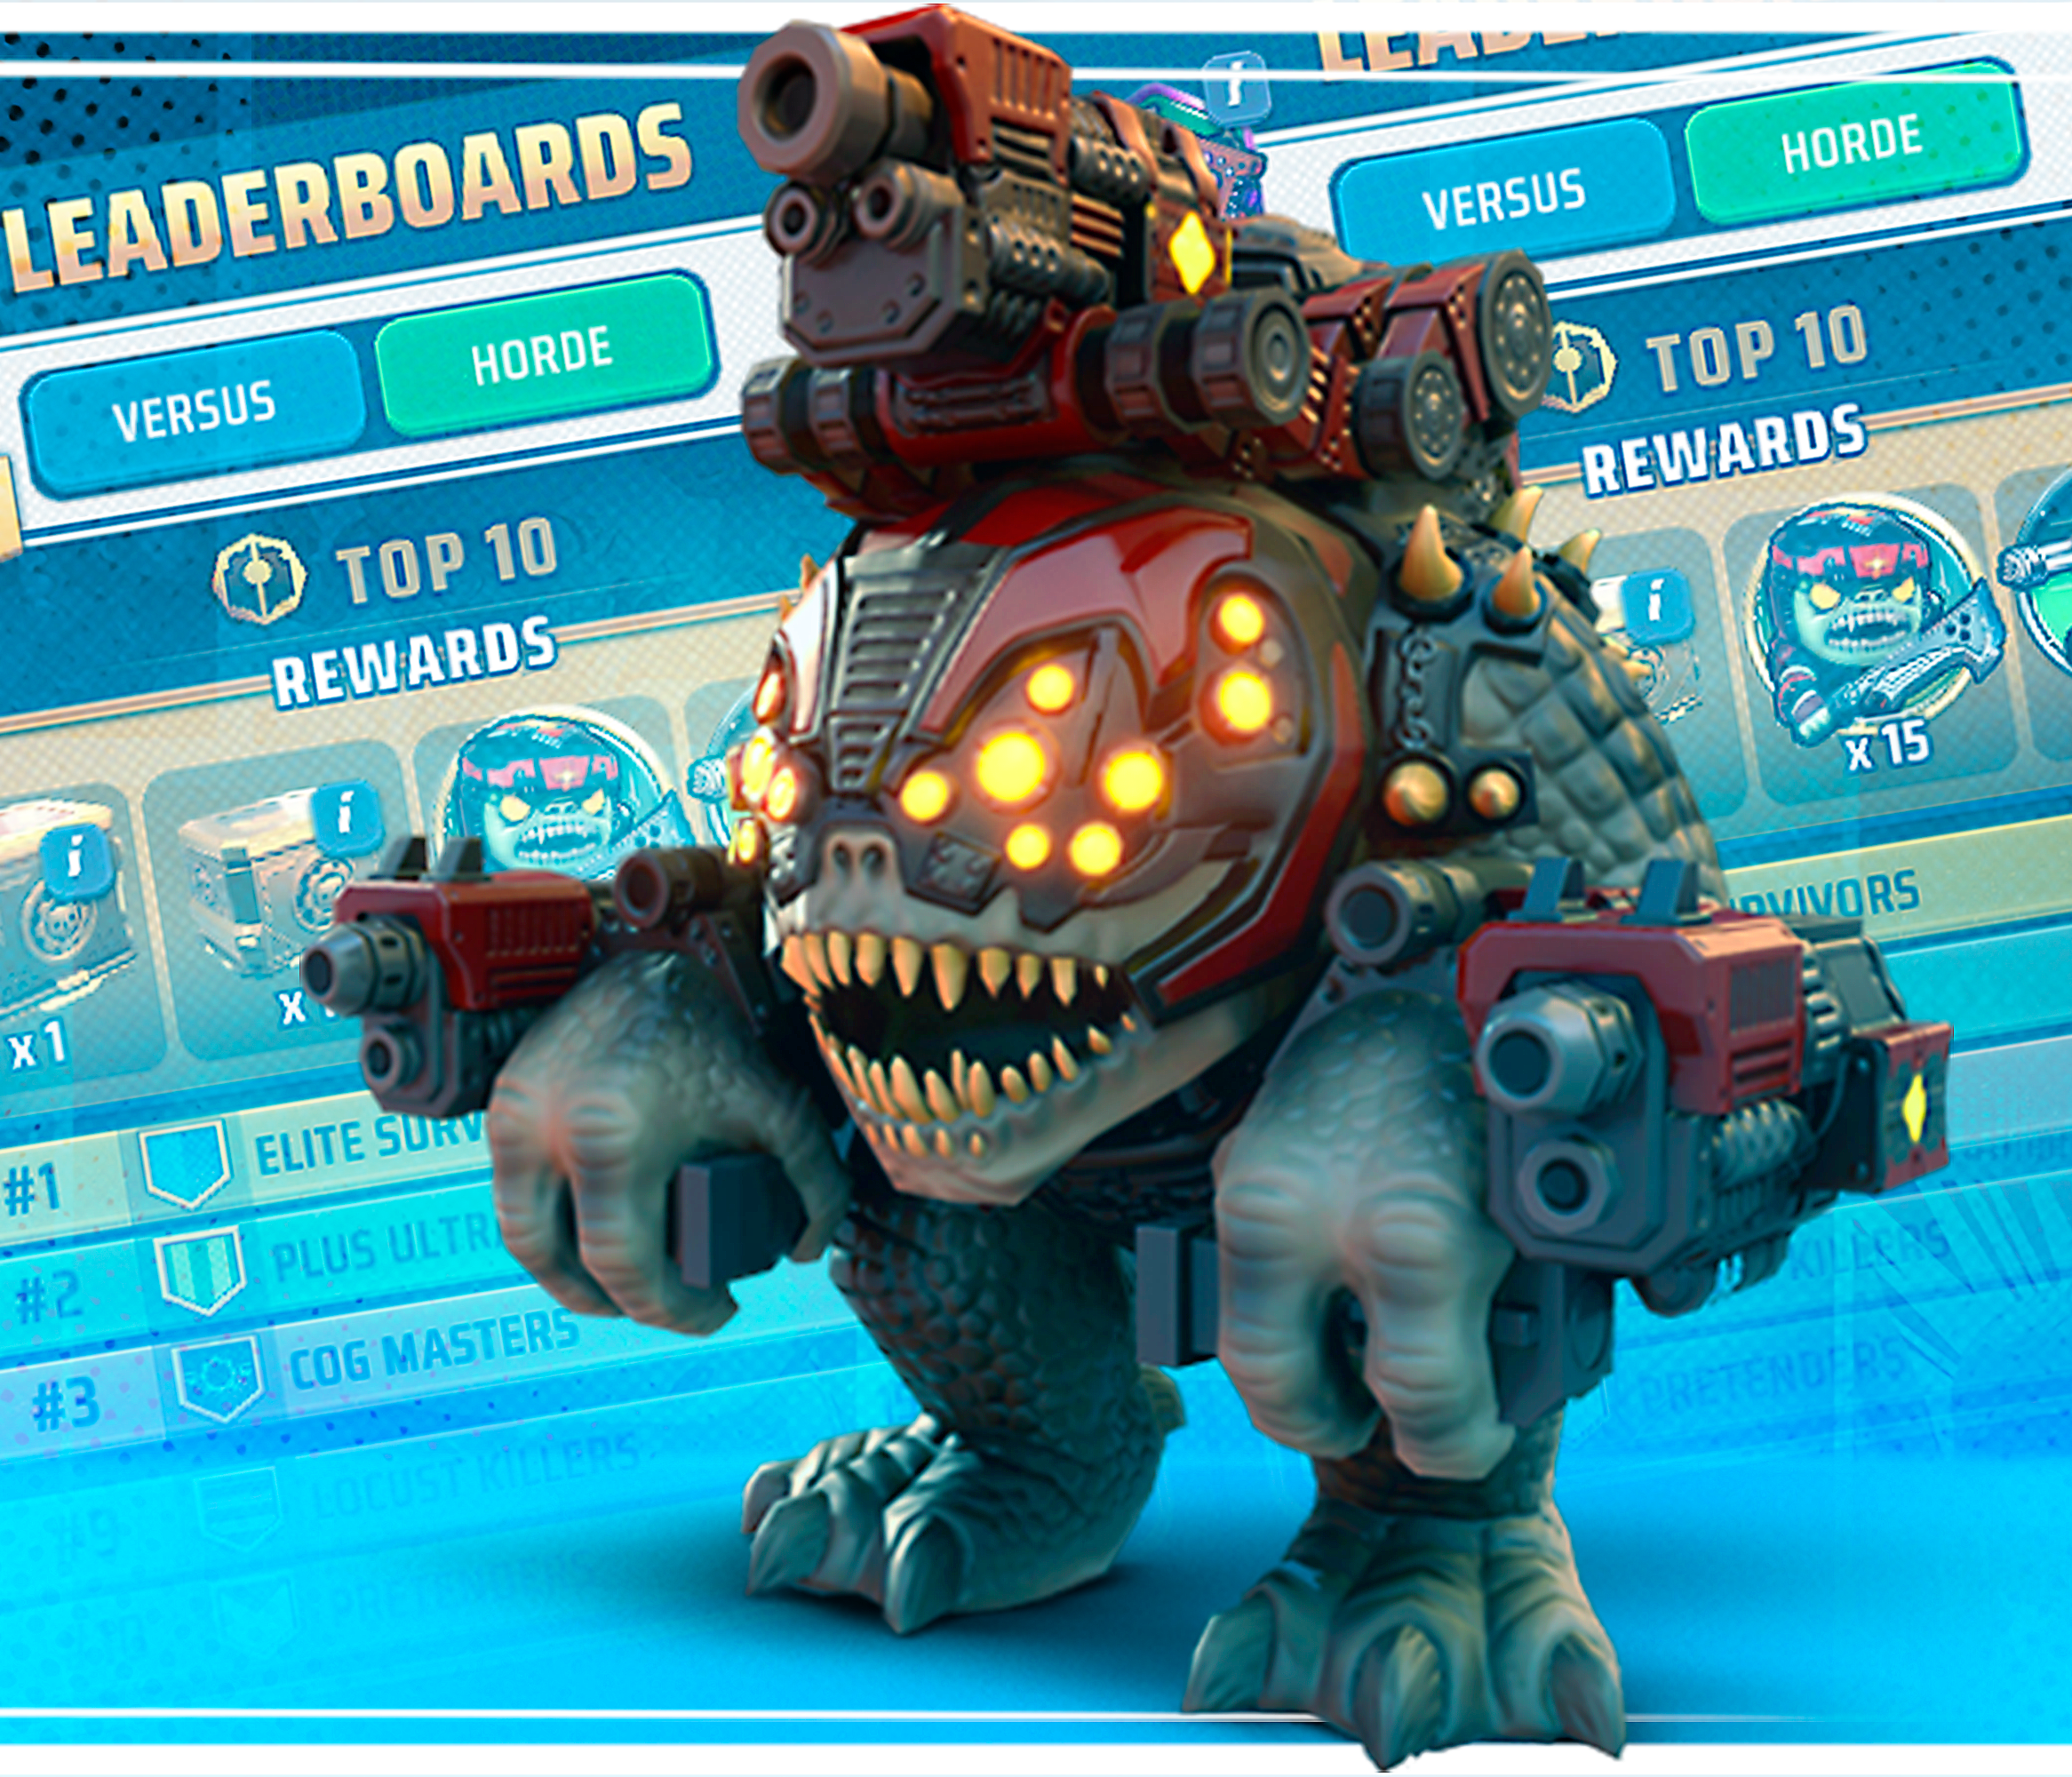 Gears POP! Brumak with Leaderboards in the background